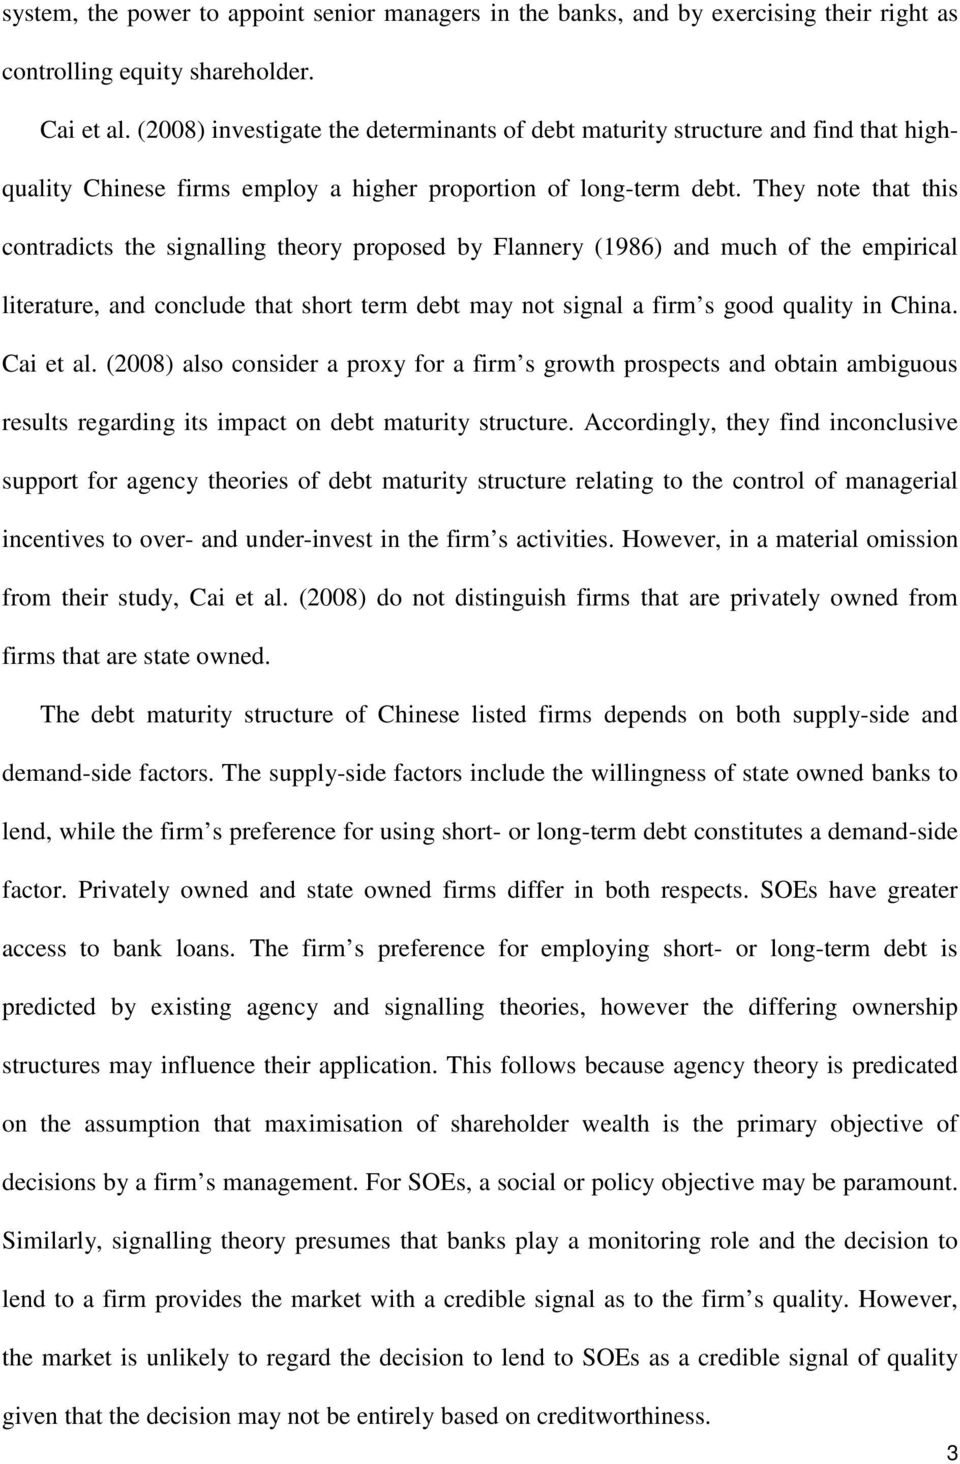 They note that this contradicts the signalling theory proposed by Flannery (1986) and much of the empirical literature, and conclude that short term debt may not signal a firm s good quality in China.